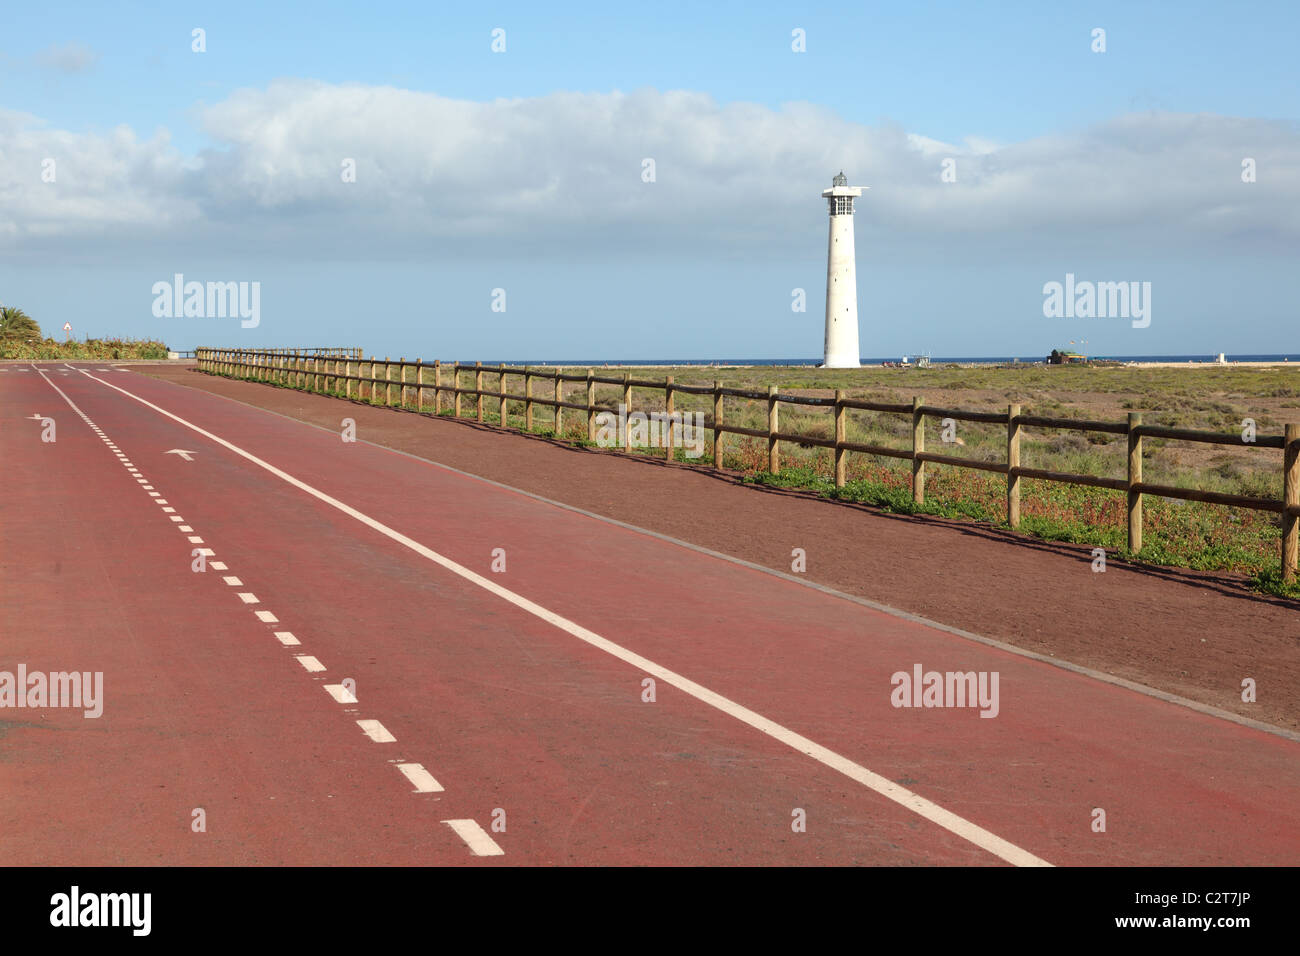 Bike lane and athletic track in Jandia Playa, Canary Island Fuerteventura, Spain - Stock Image